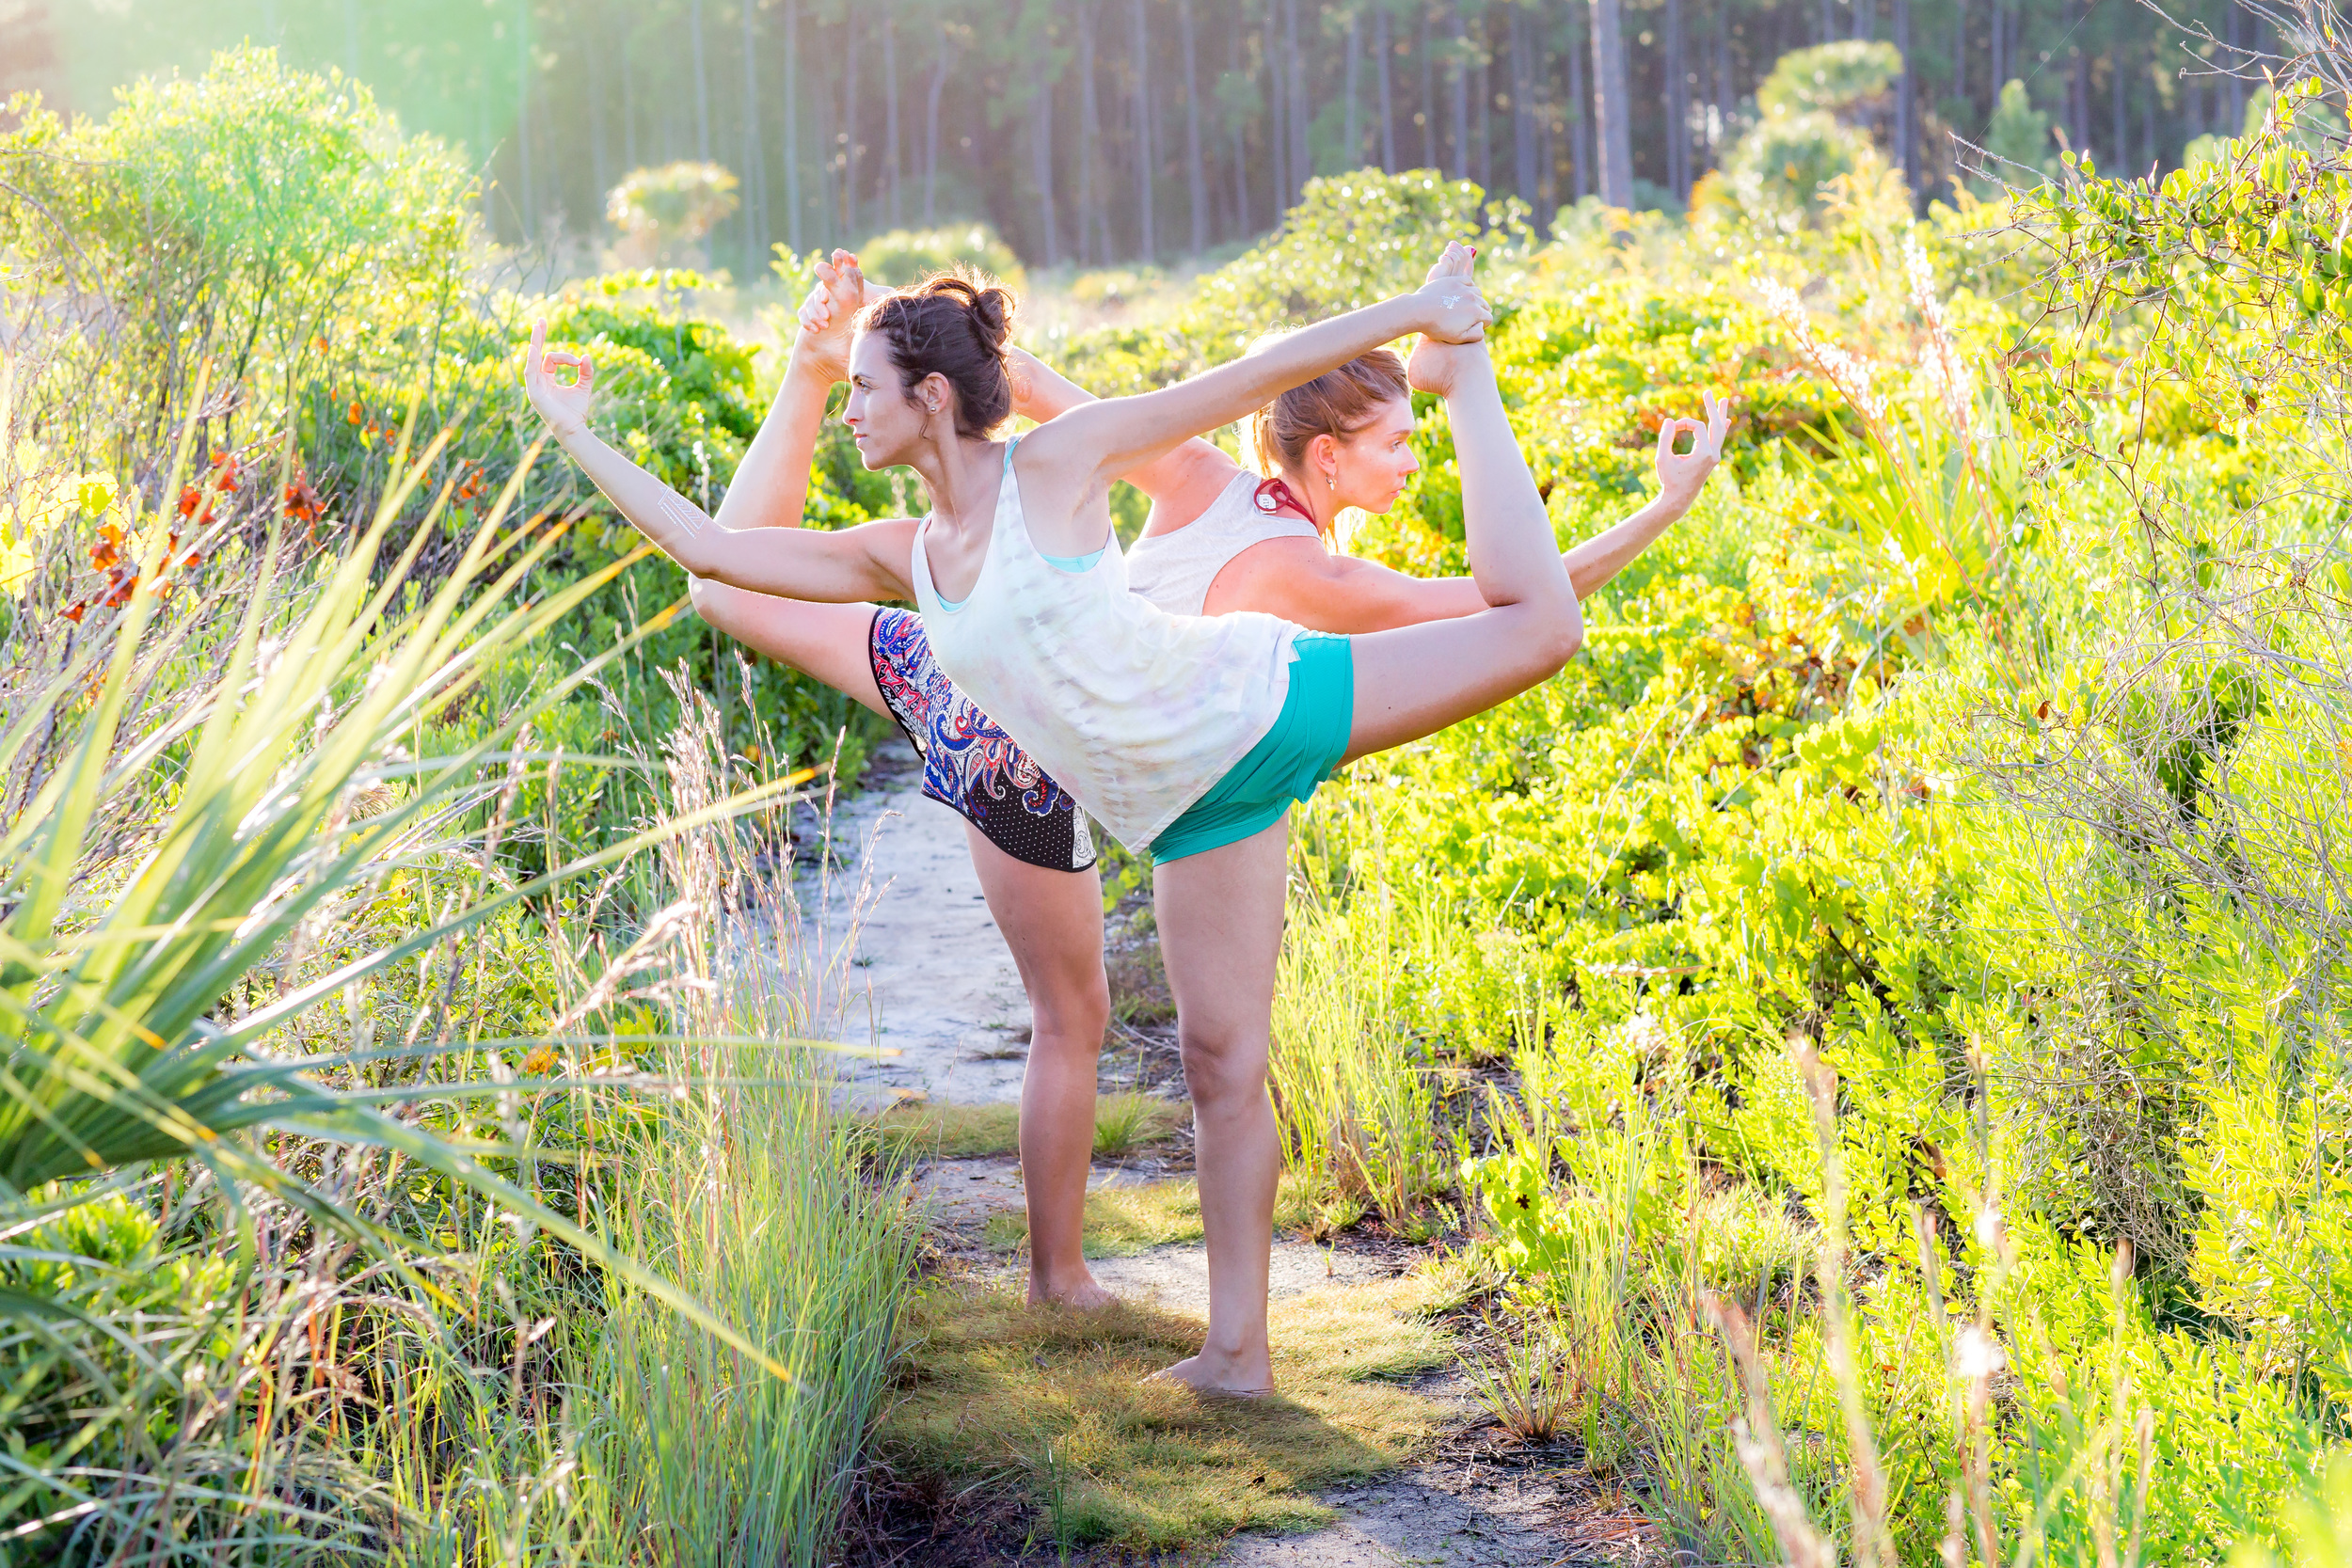 24 Oct 15Child of the Wild Sheebani Flashtats Acroyoga Yoga- Cruickshank Wildlife Scrub Forest Trail Hiking - Christy Lindsey Oct 2015 10.jpg